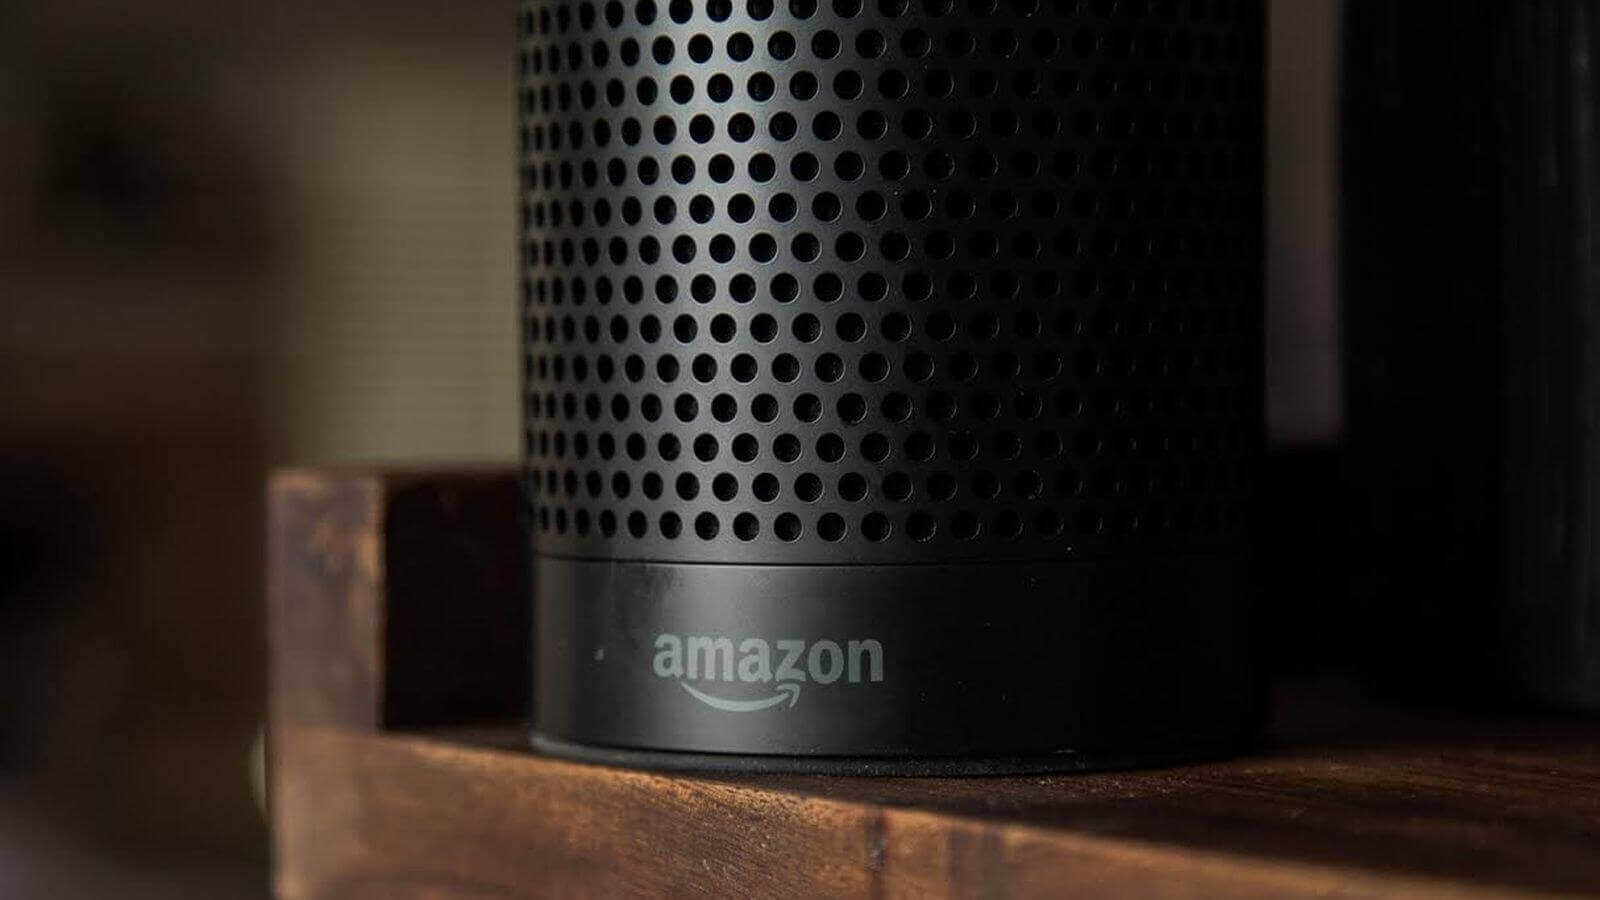 Amazon launches 'Alexa Answers,' letting select customers answer questions for the AI